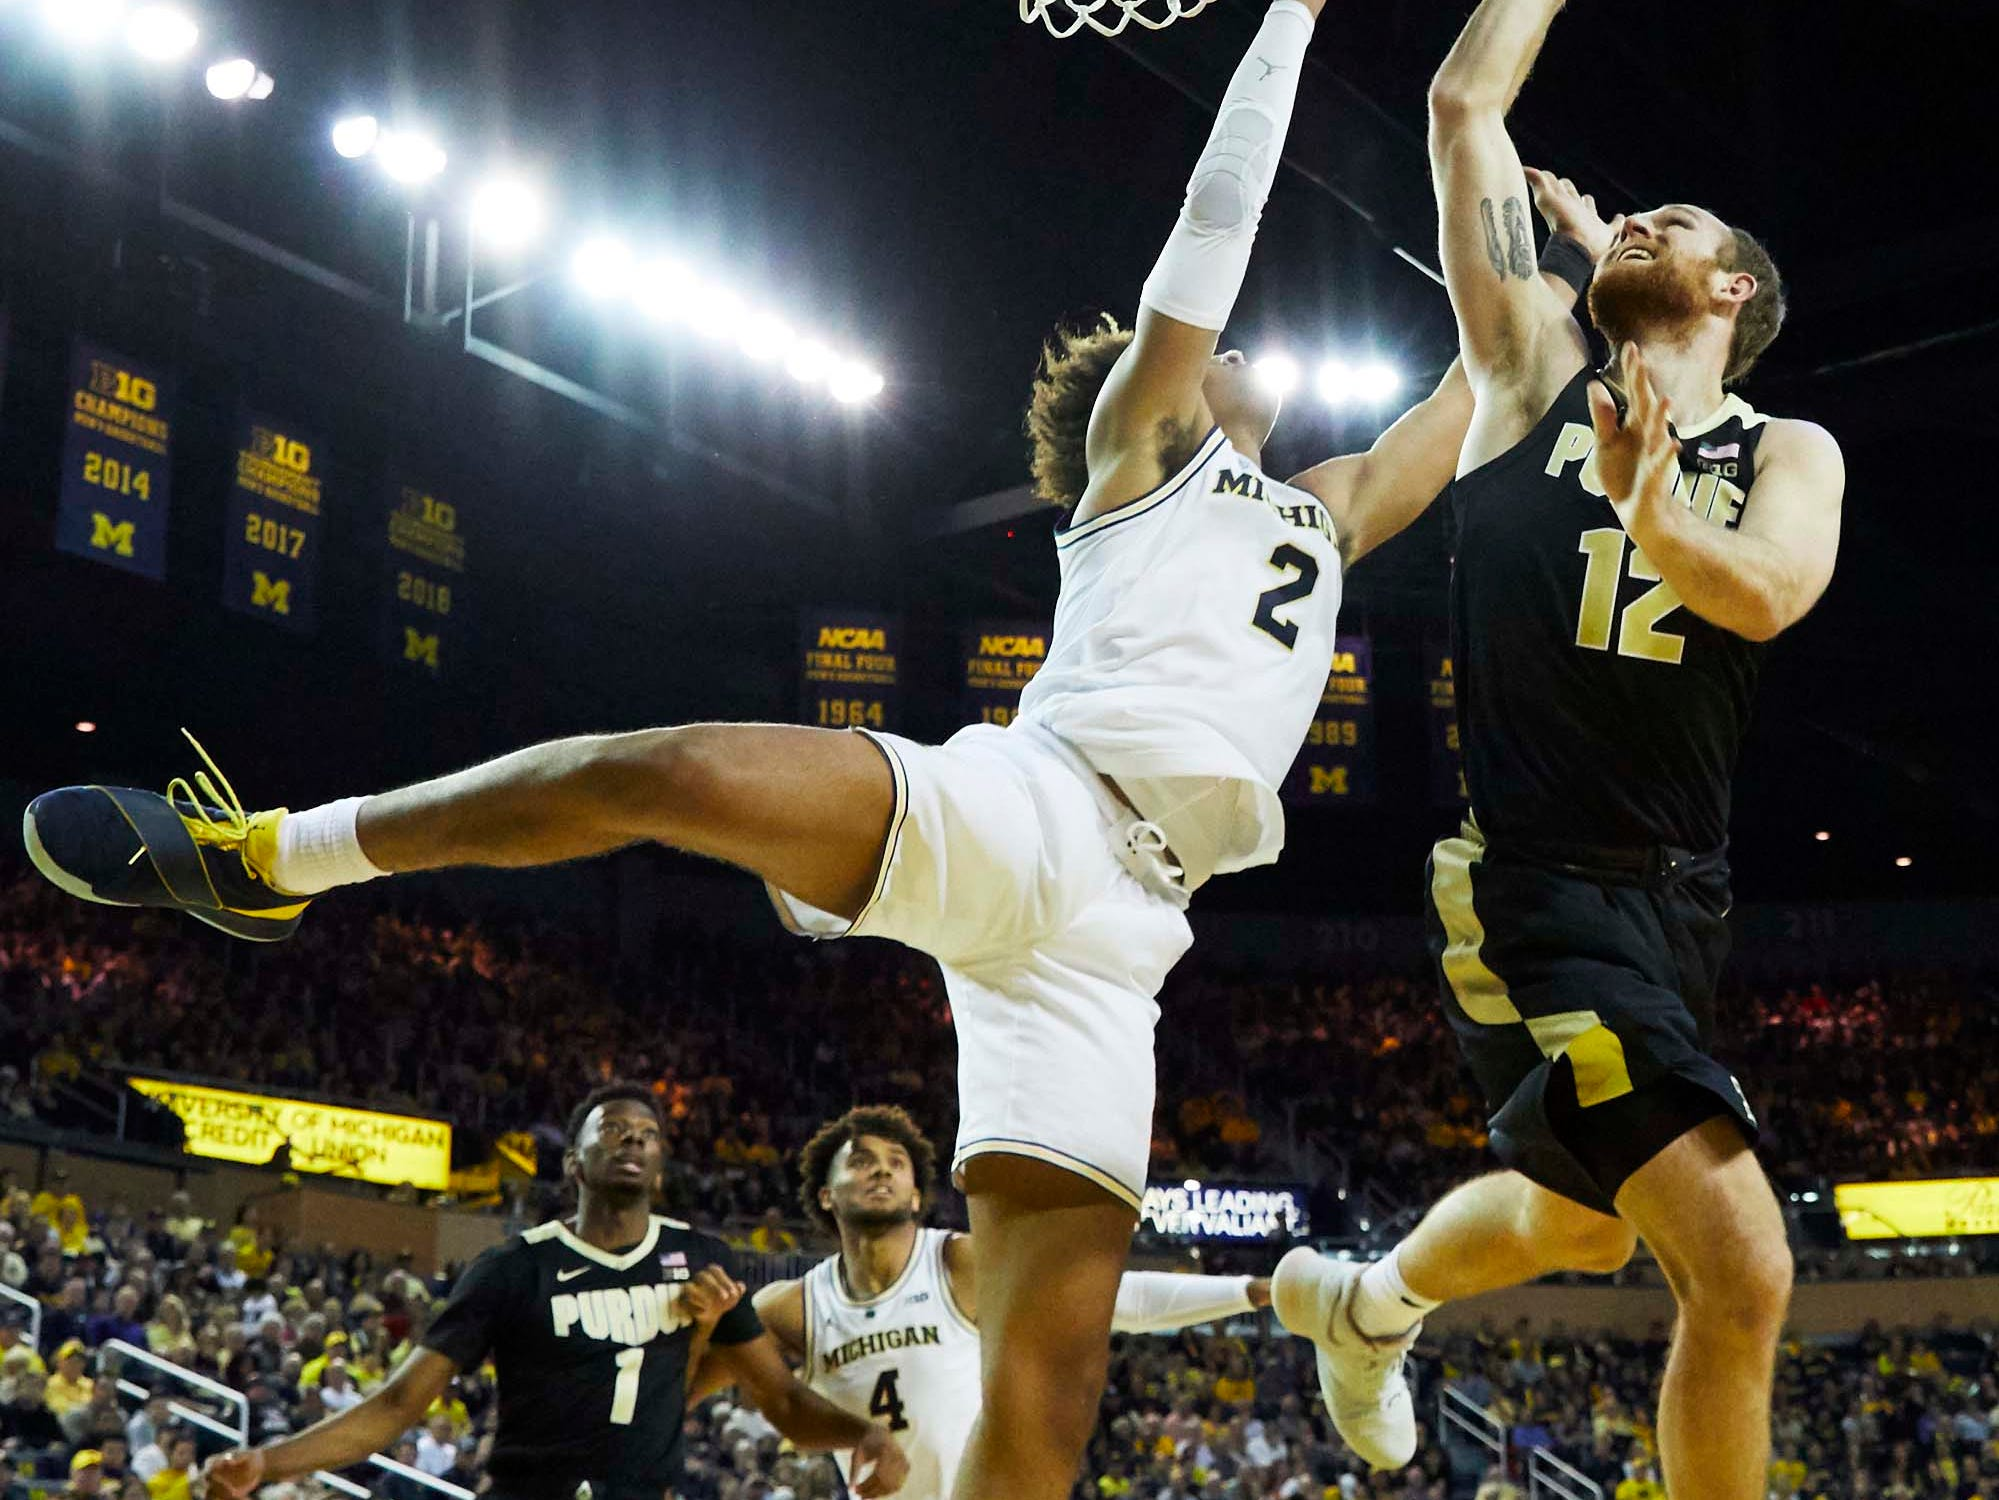 Dec 1, 2018; Ann Arbor, MI, USA; Purdue Boilermakers forward Evan Boudreaux (12) shoots on Michigan Wolverines guard Jordan Poole (2) in the second half at Crisler Center. Mandatory Credit: Rick Osentoski-USA TODAY Sports